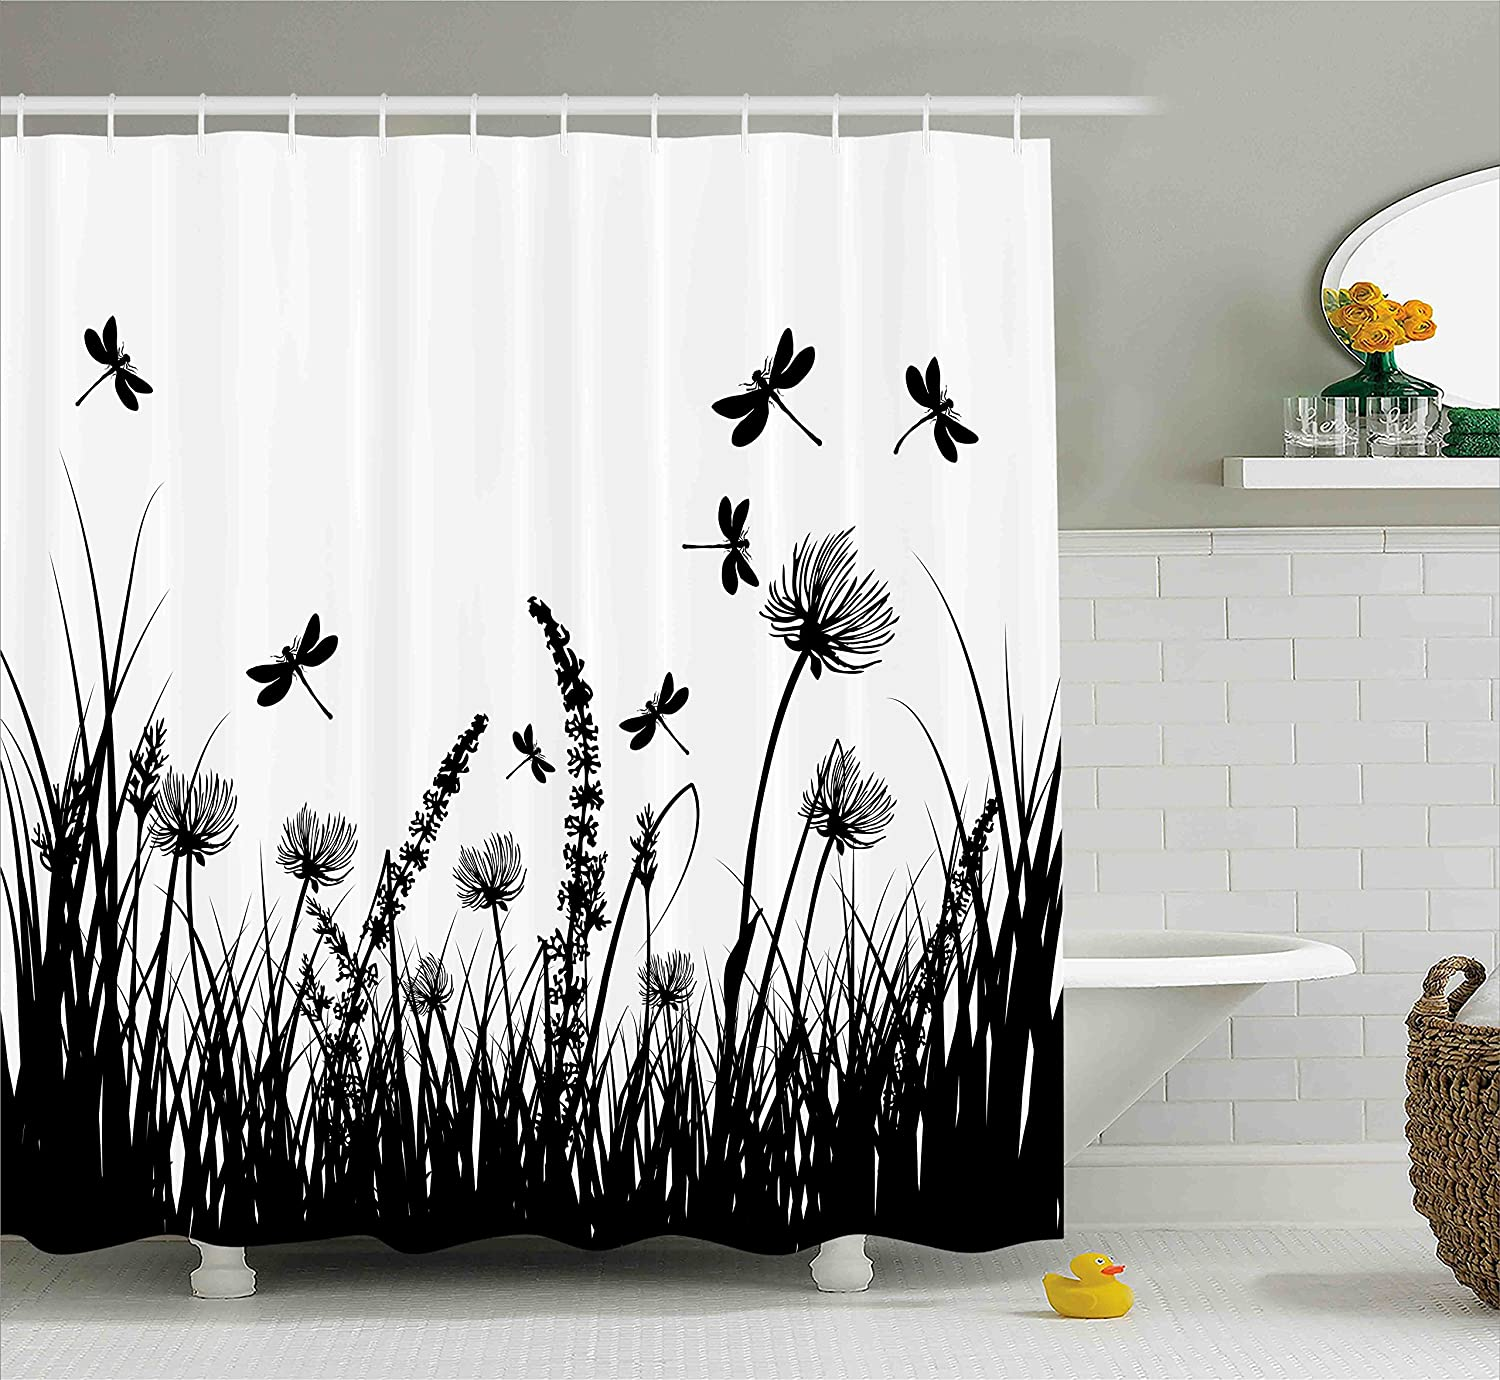 Ambesonne Nature Shower Curtain, Grass Bush Meadow Silhouette with Dragonflies Flying Spring Garden Plants Display, Fabric Bathroom Decor Set with Hooks, 70 inches, Black White